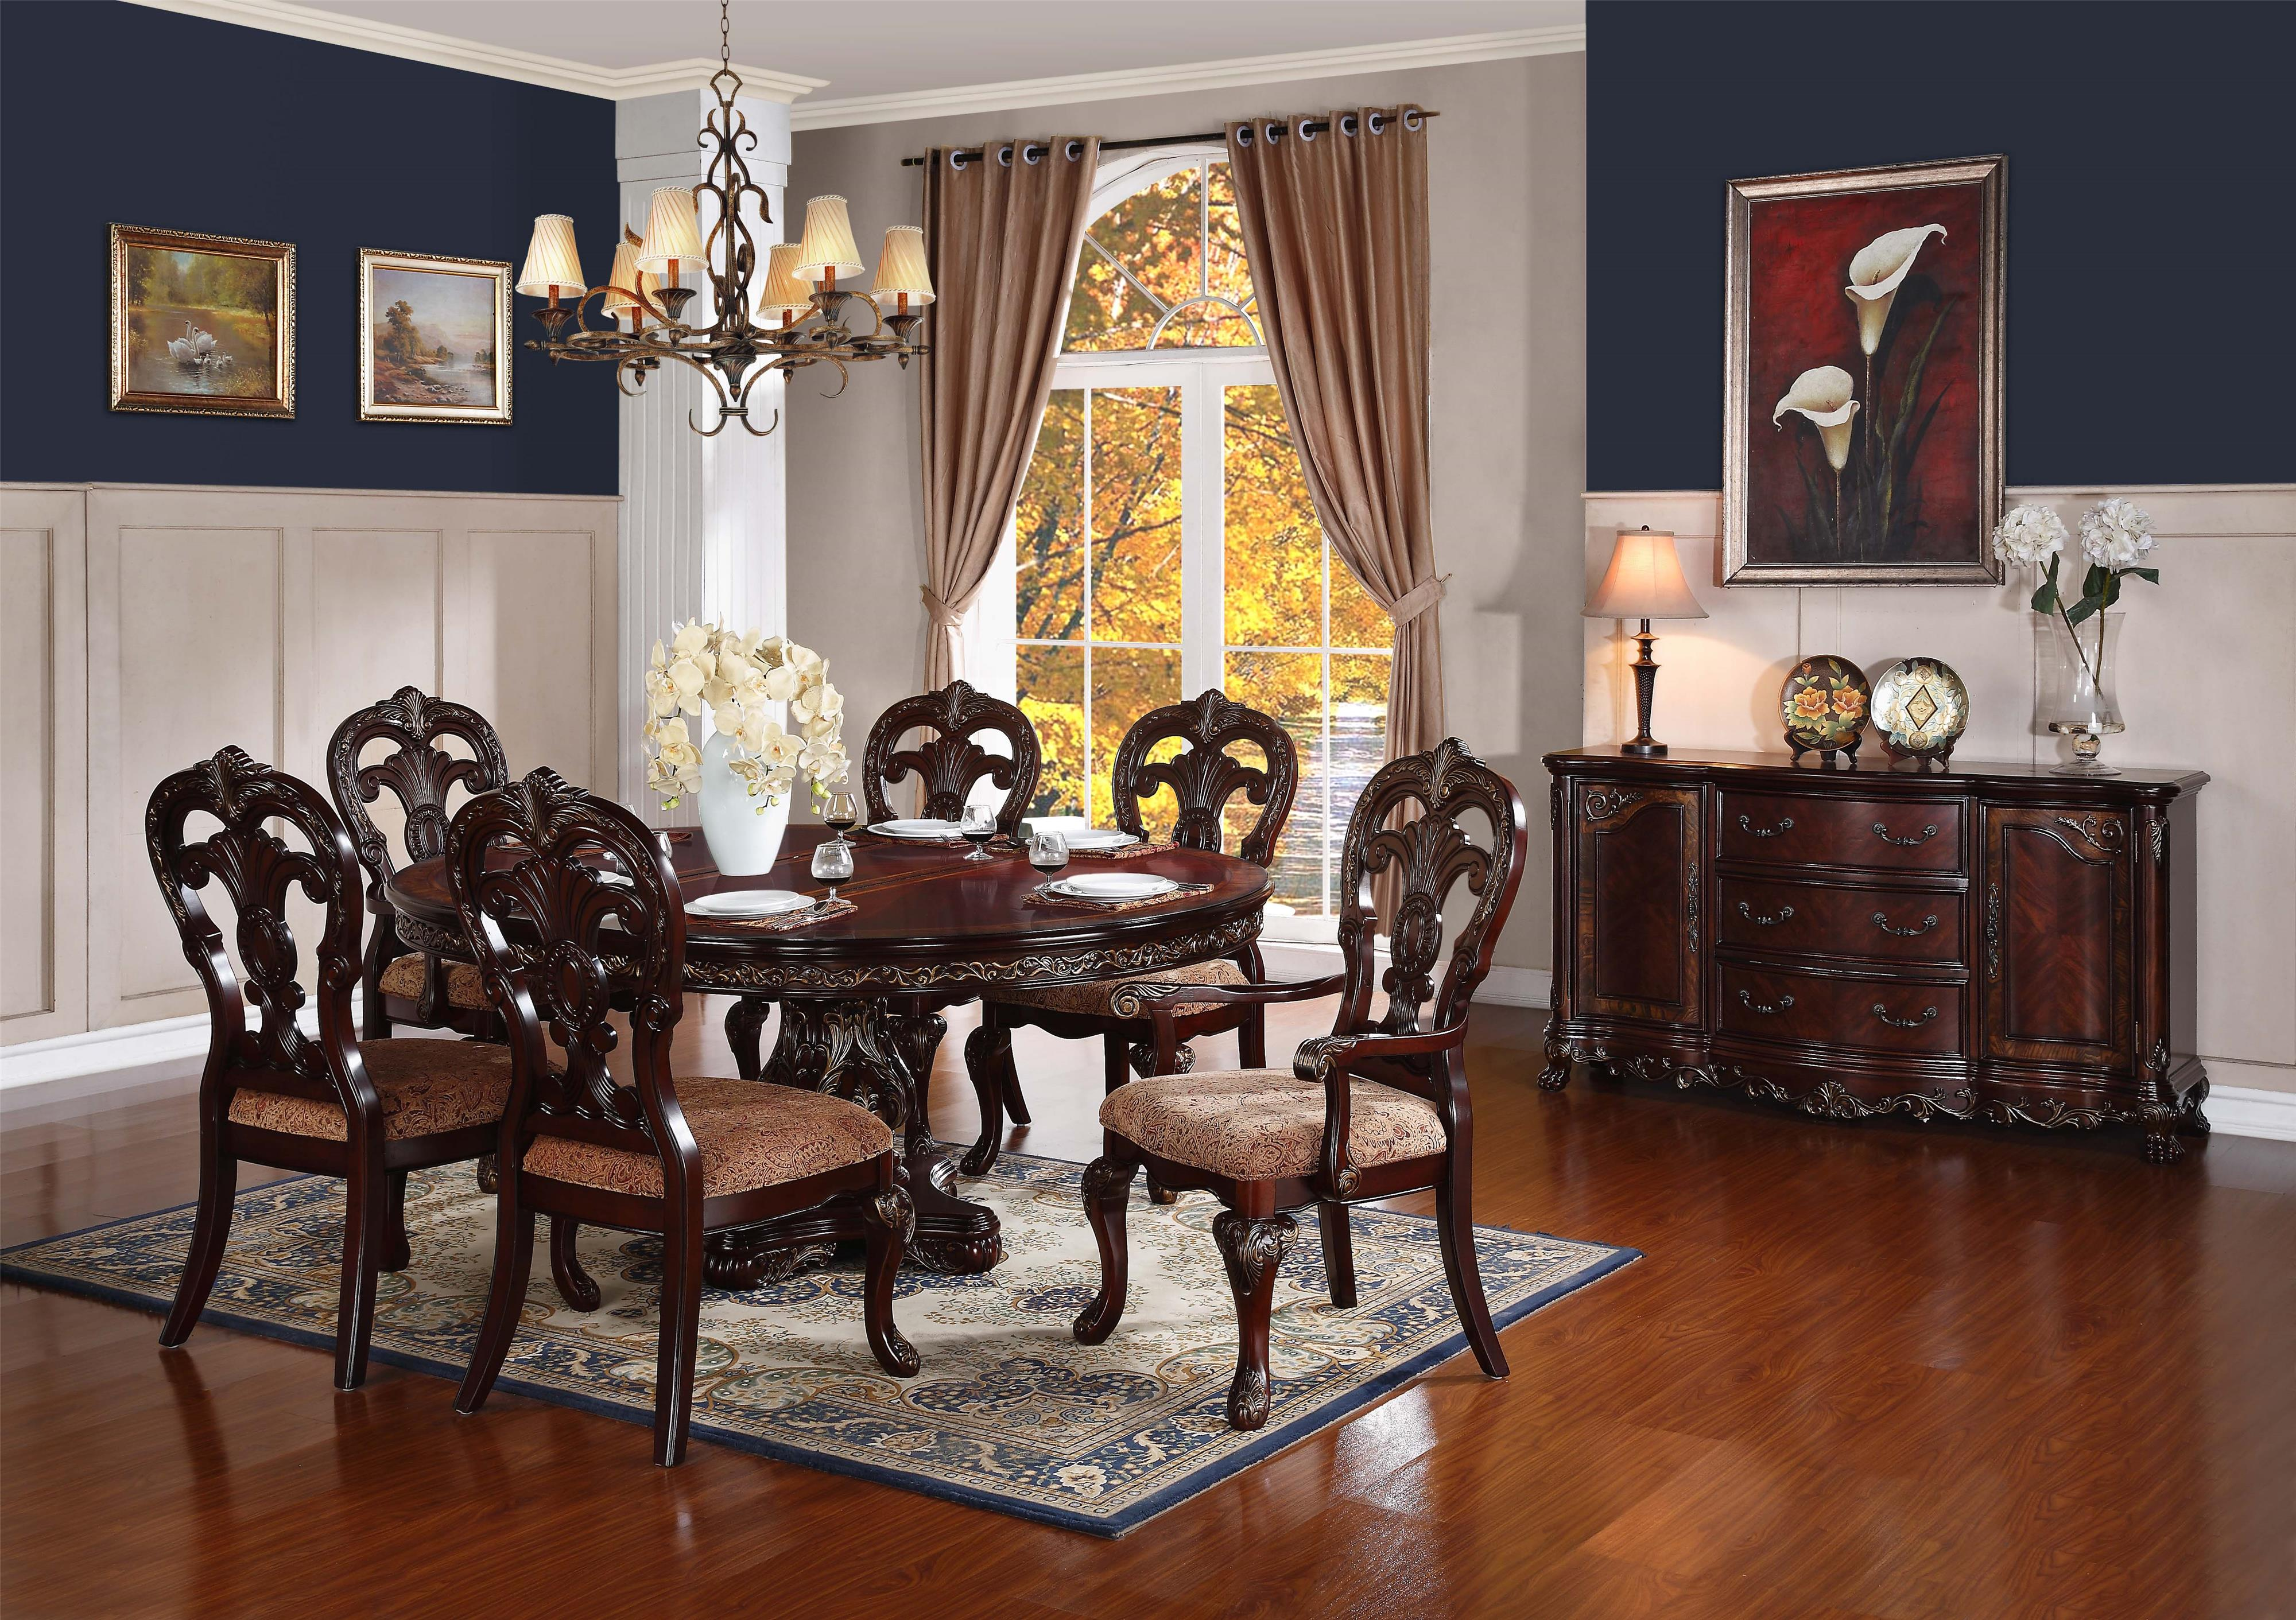 chairs room table surprising dining round sets splendid tables chair design decor set mallenton and small laundry fresh of minimalist photos in with